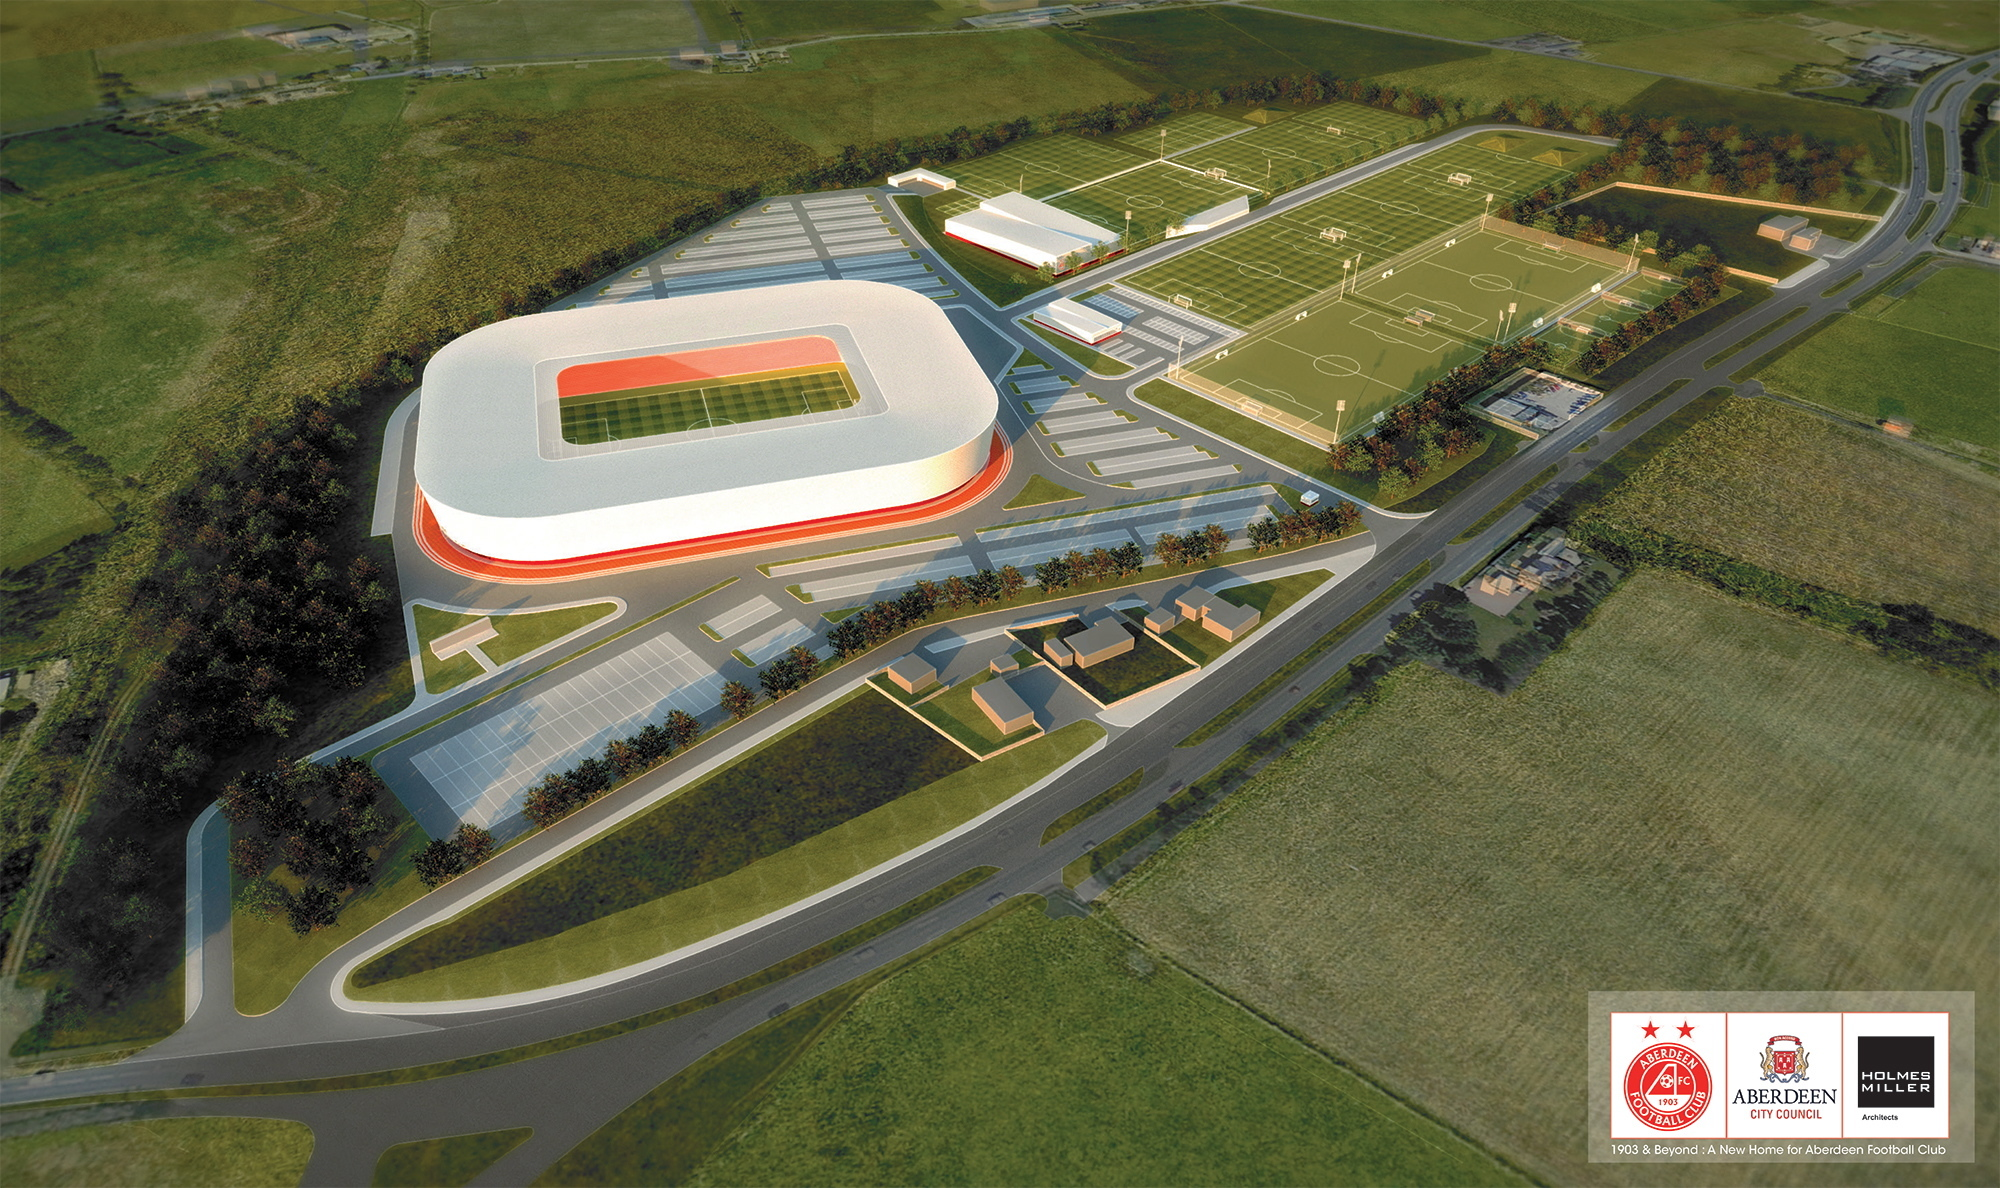 An earlier artist impression issued by the club